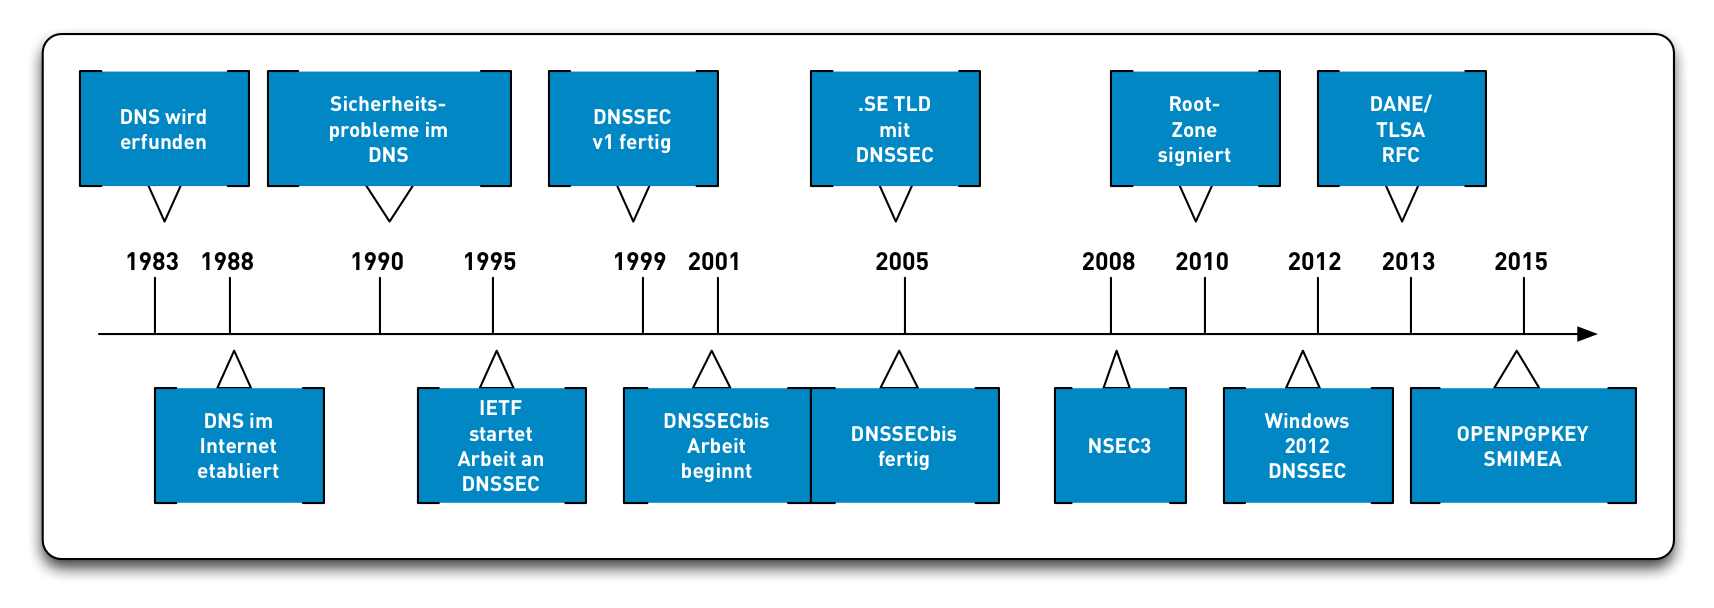 DNSSEC-History14.png